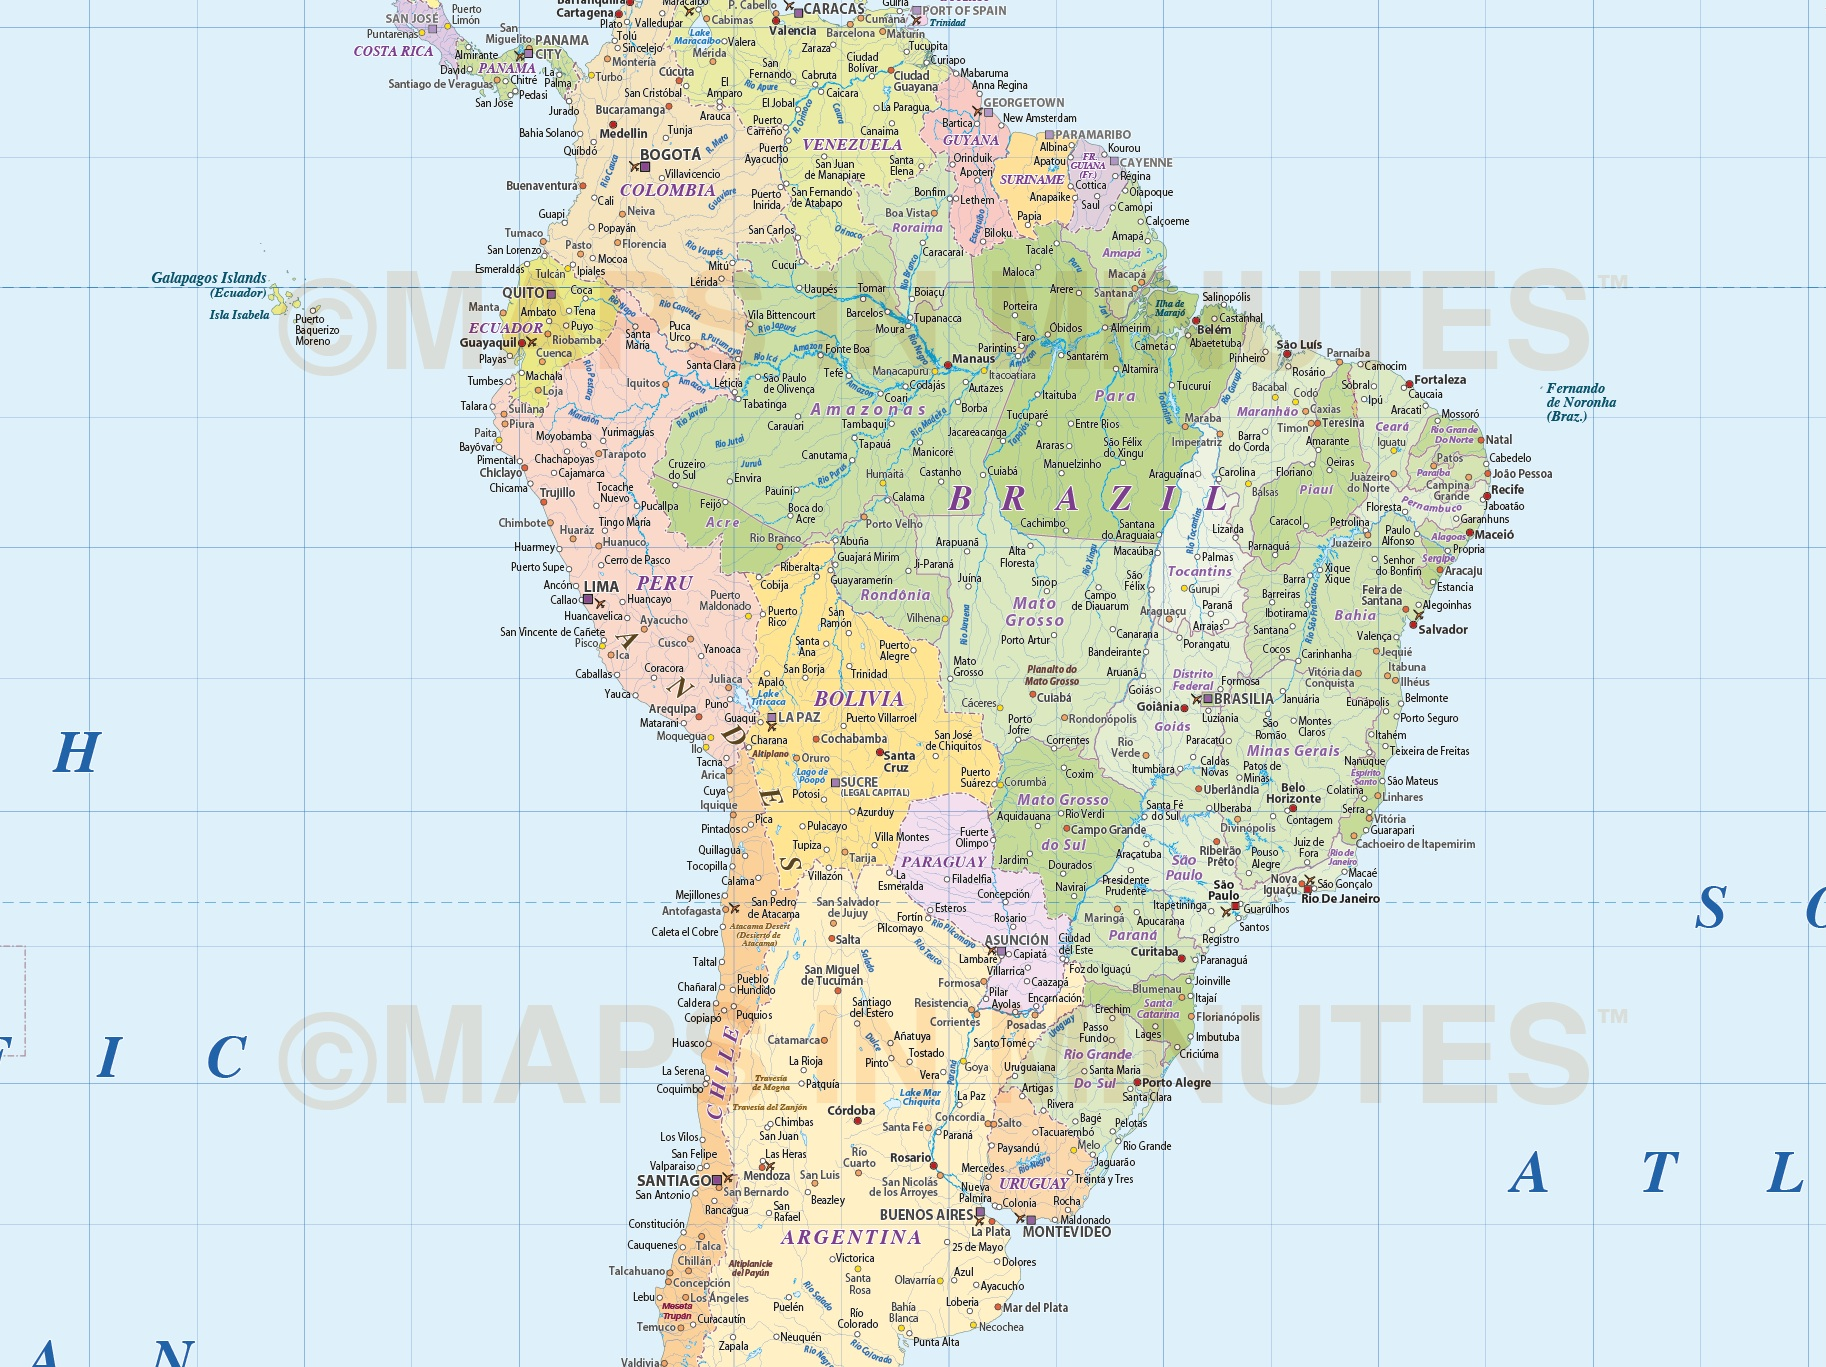 Whole world map gall projection with layered populations uk digital vector map gall projection world map political with population layered by size gumiabroncs Choice Image